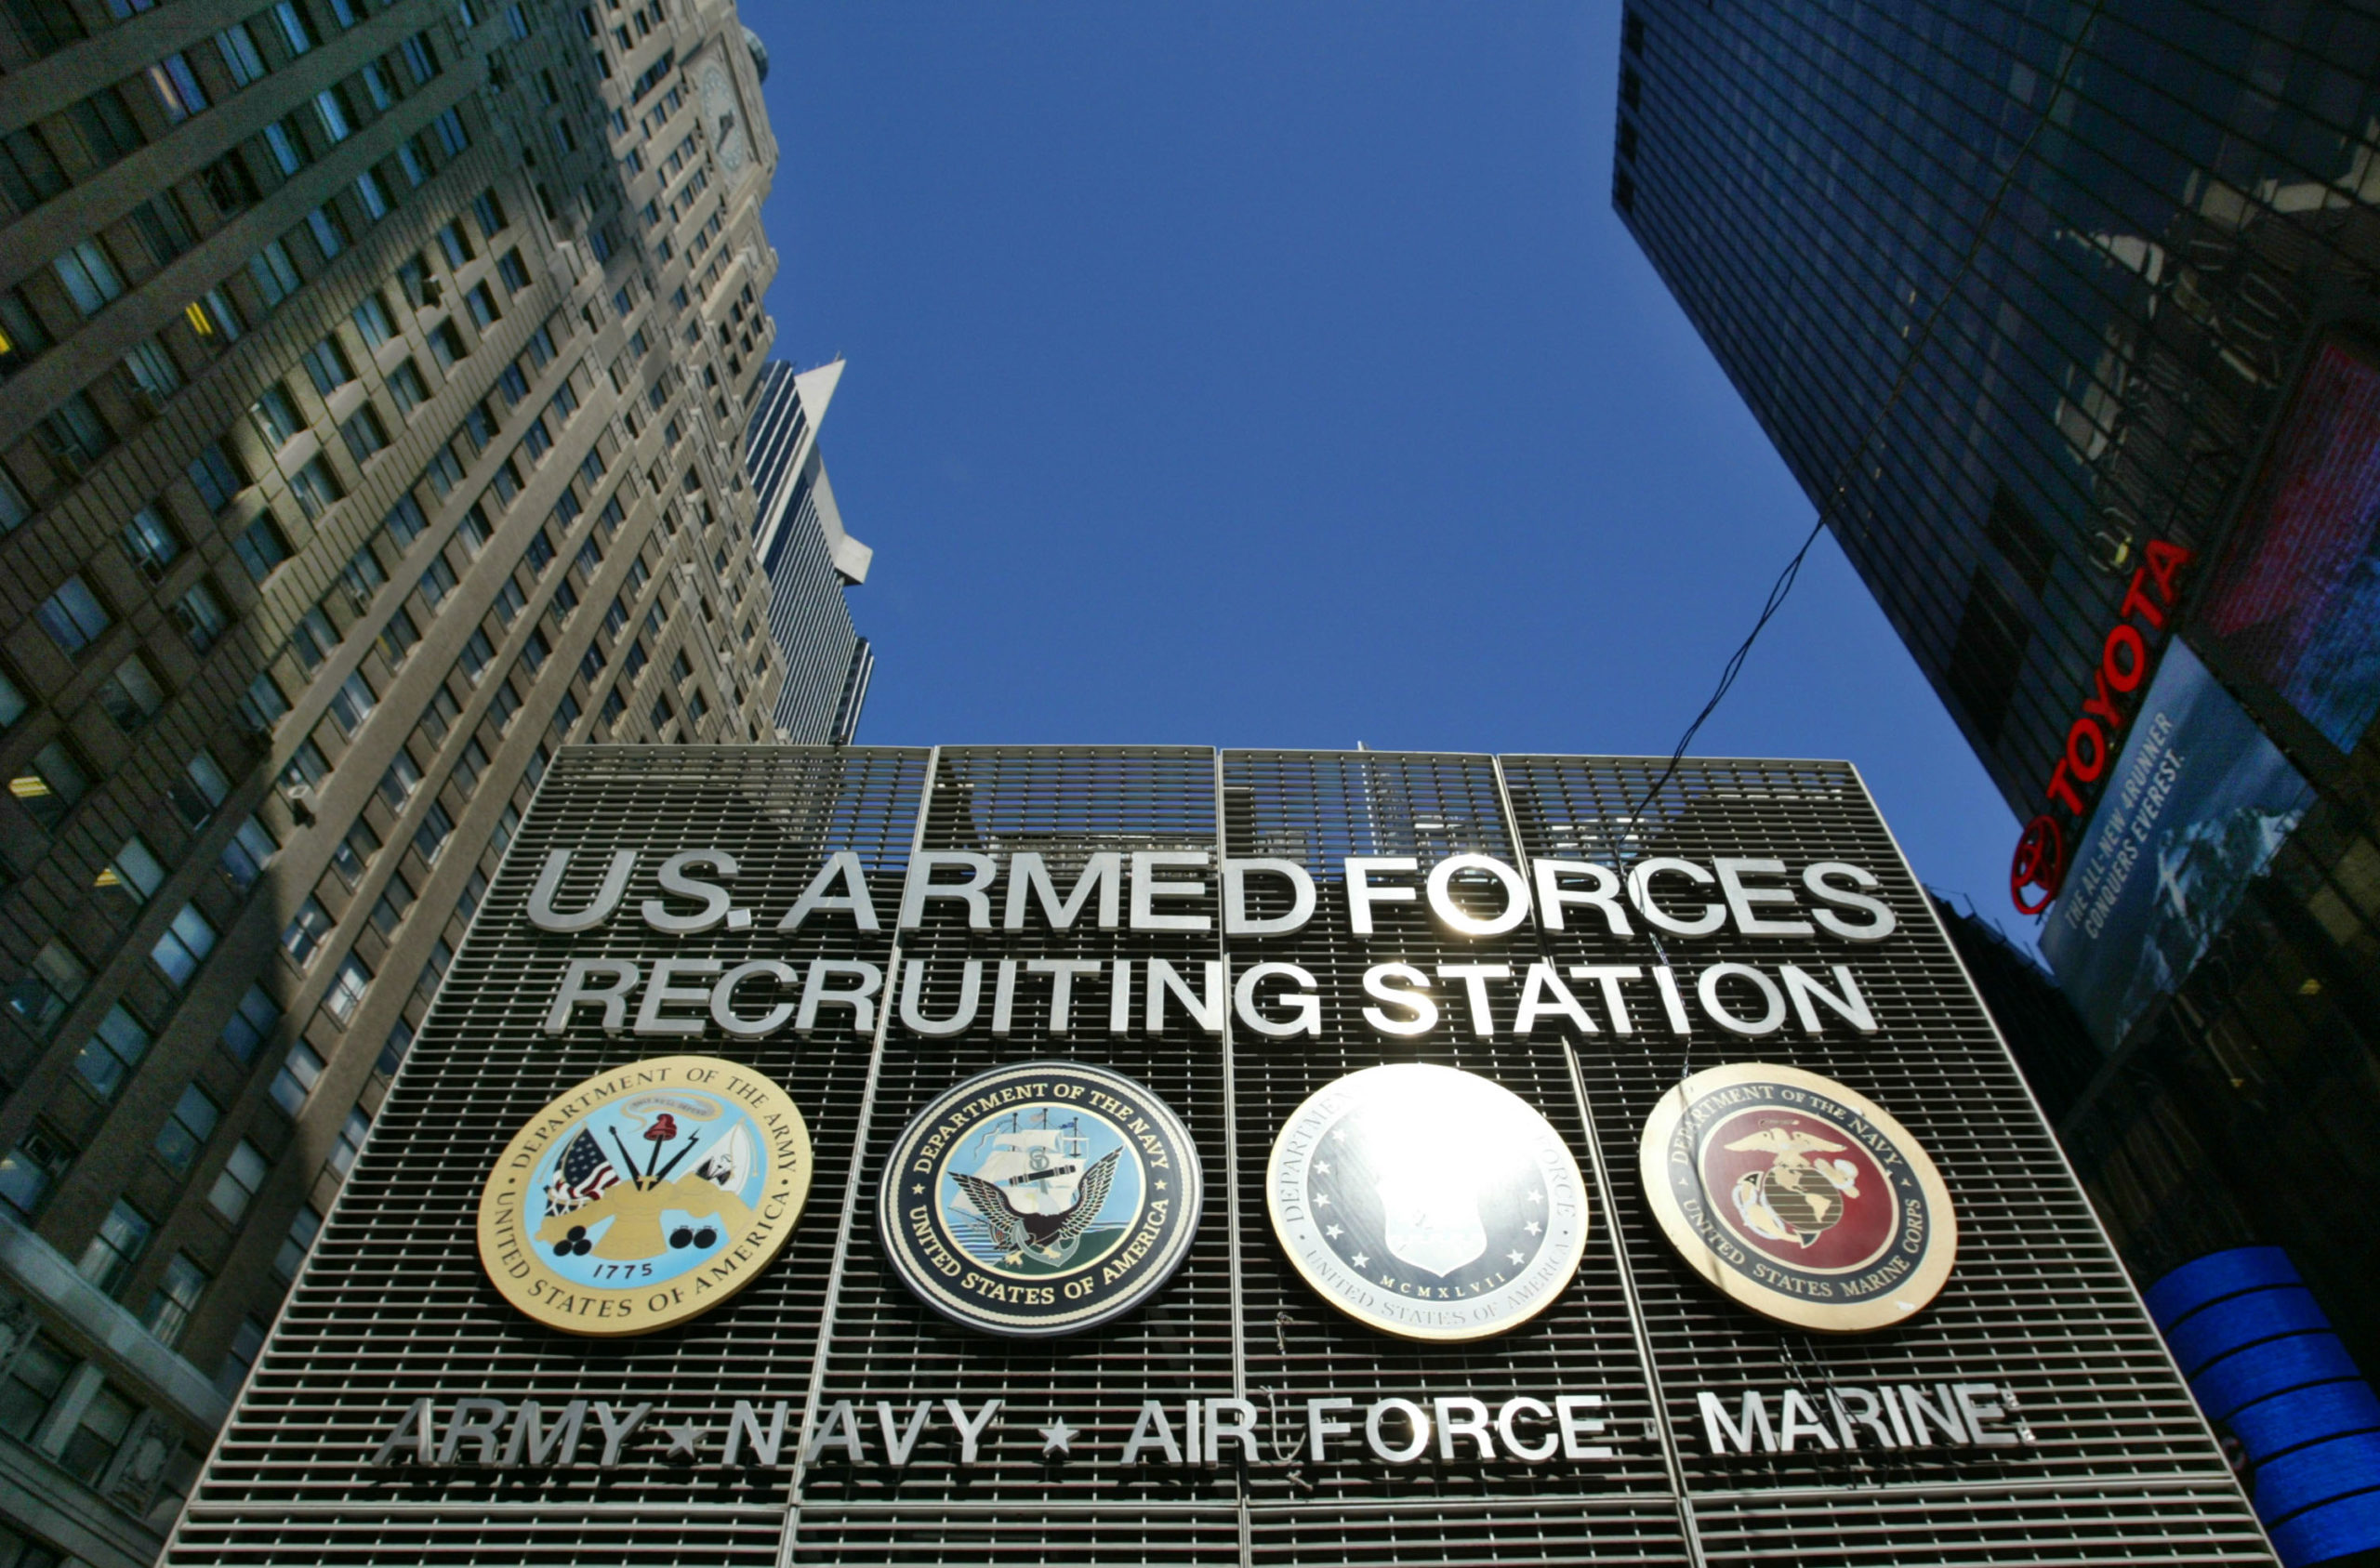 The U.S. Armed Forces Recruiting Station in Times Square sits nestled among skycrapers February 20, 2003 in New York City. (Photo by Chris Hondros/Getty Images)